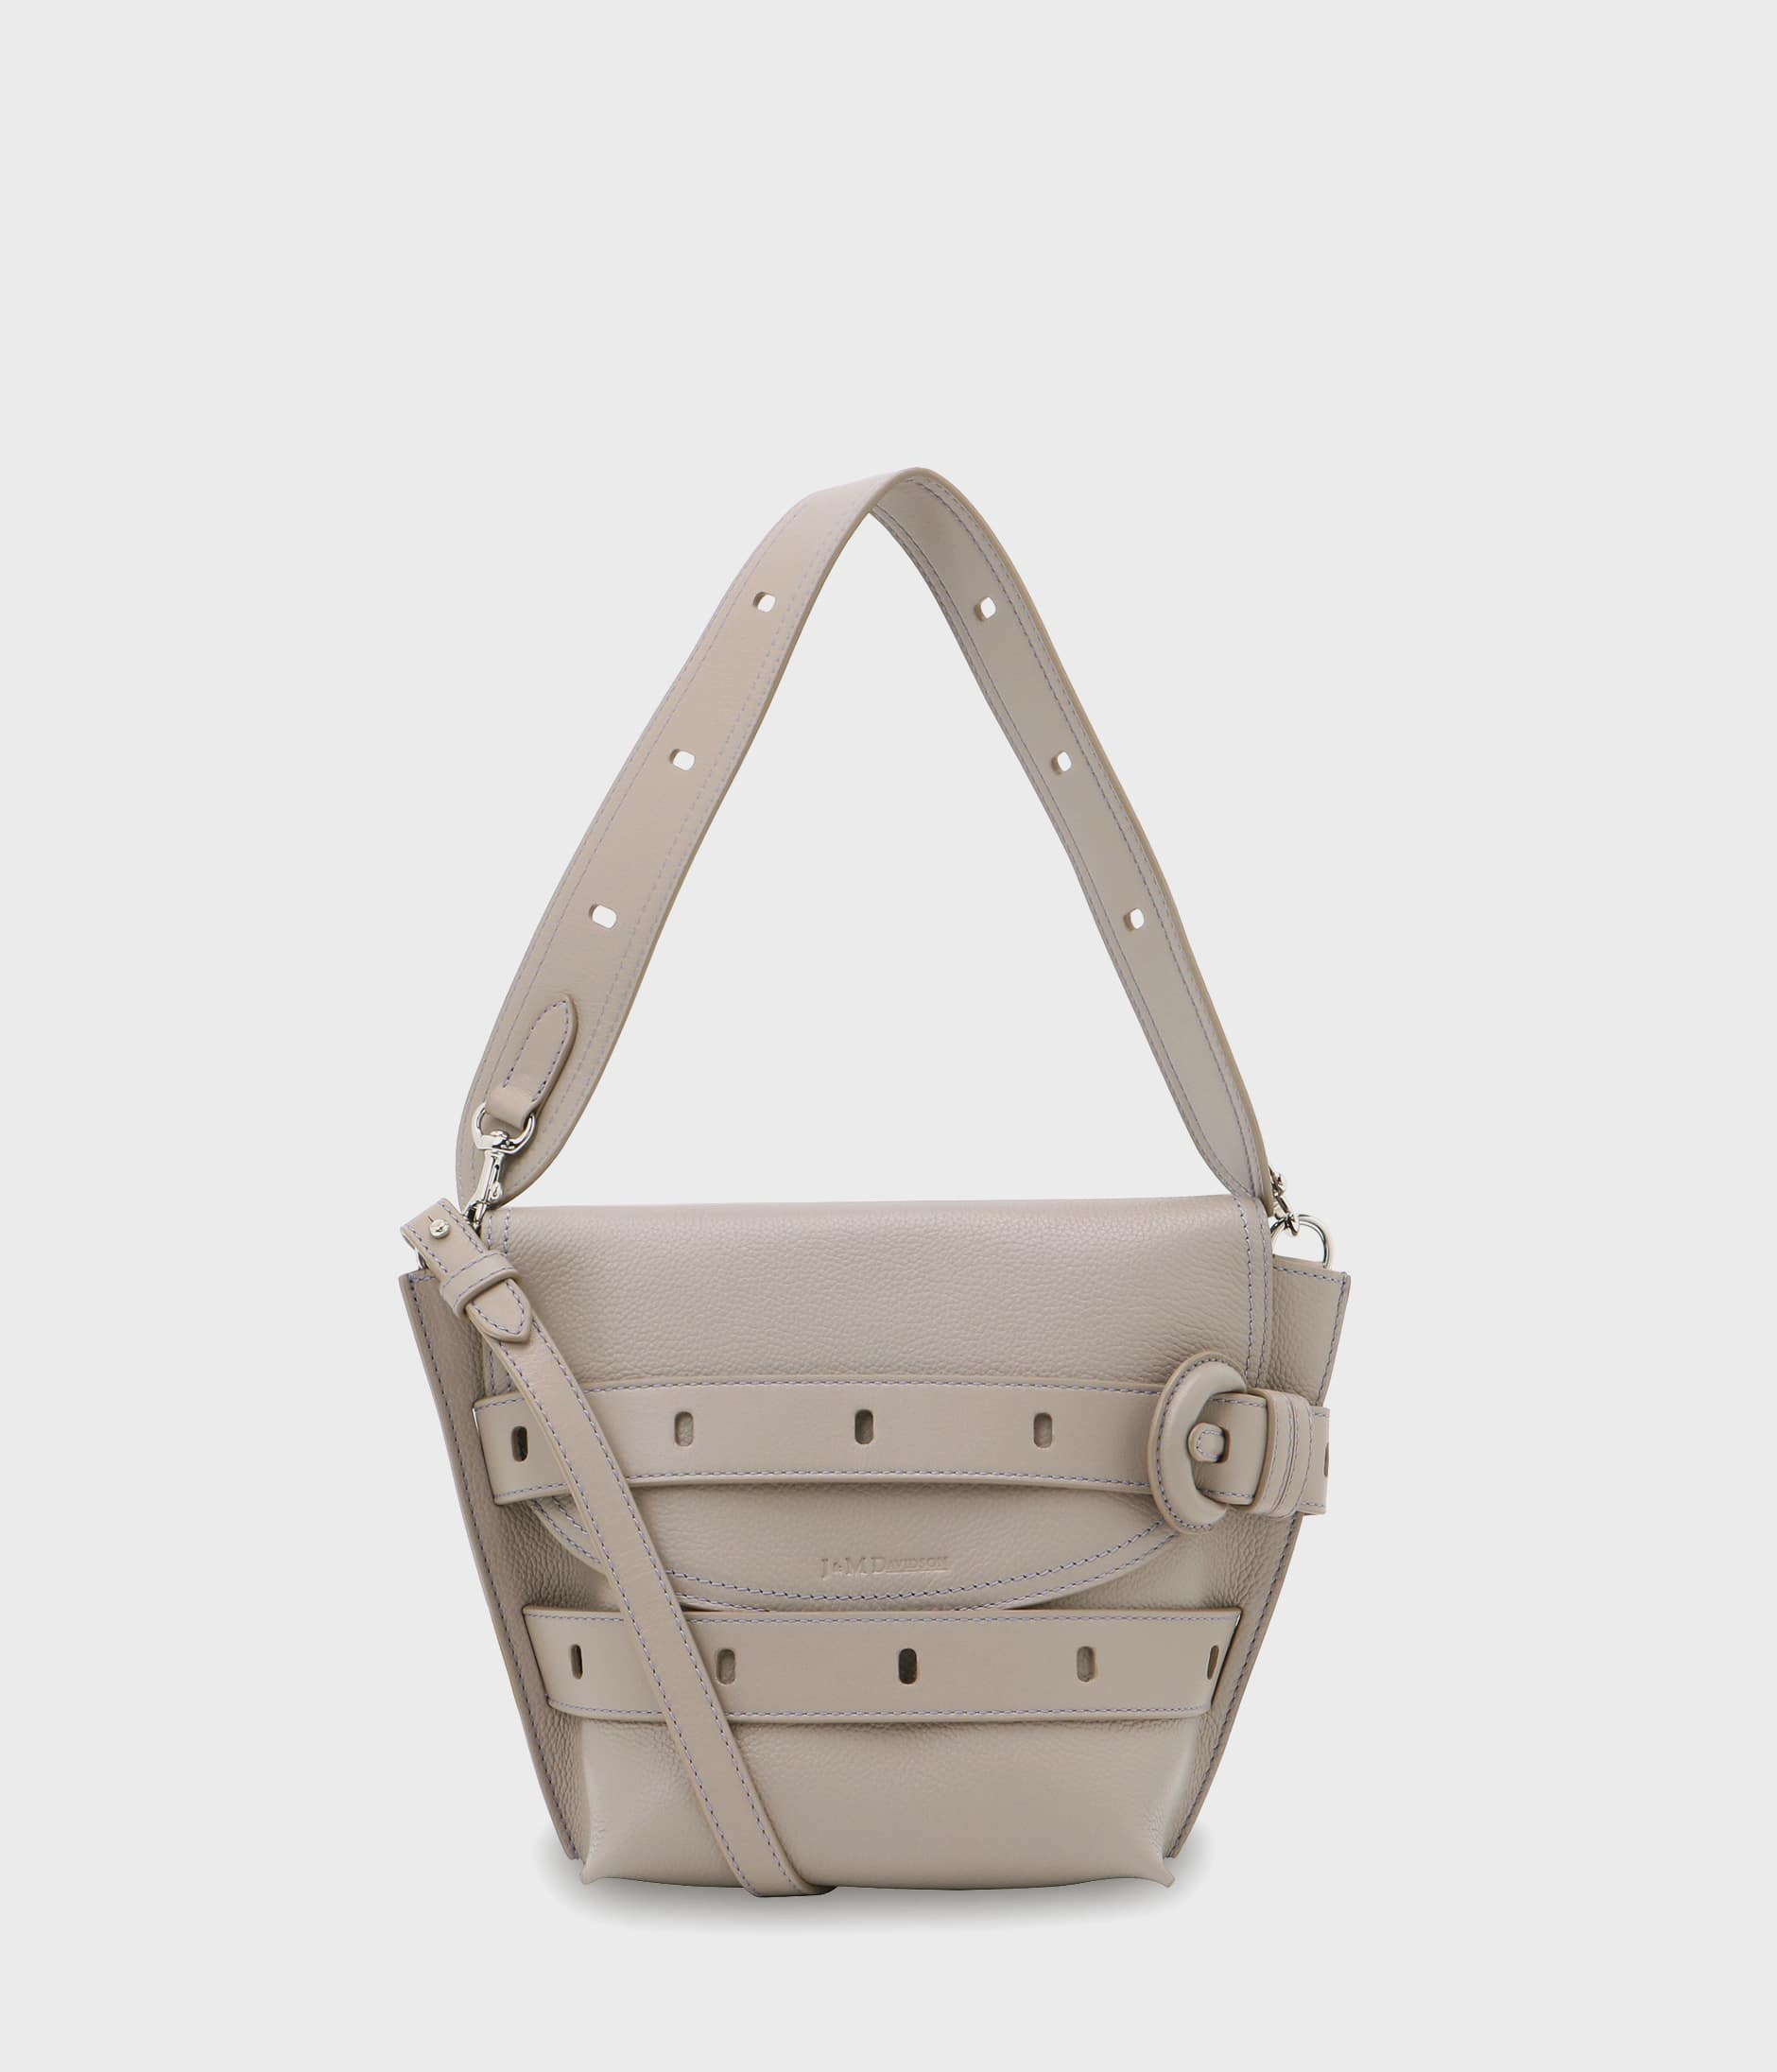 THE BELT BAG 詳細画像 PALE GREY 1